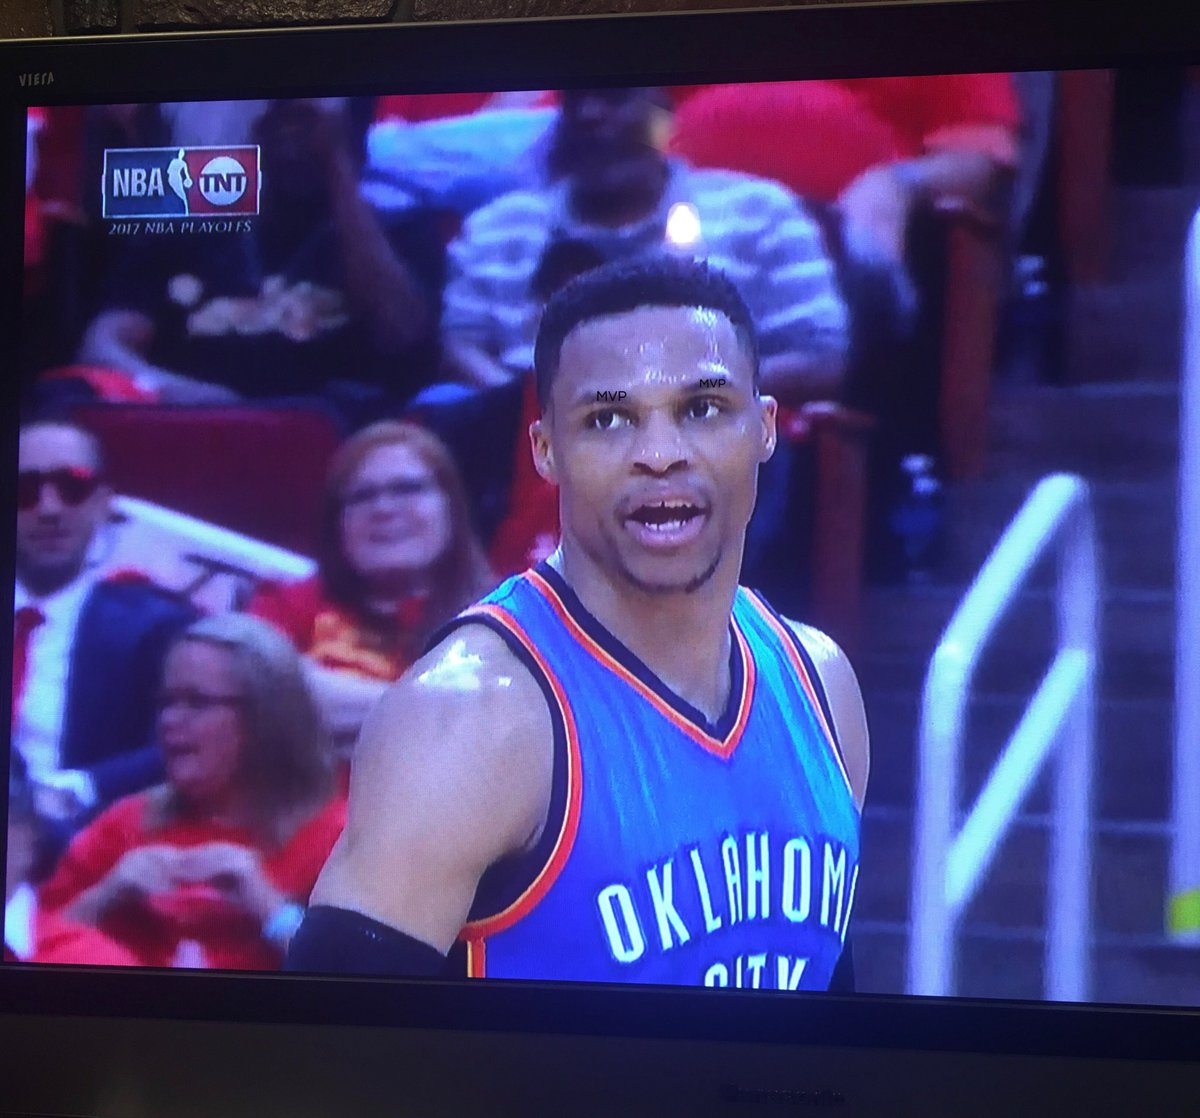 Zoom in on Westbrook's eyebrows  #ThunderUP https://t.co/2lZGHgbyLb